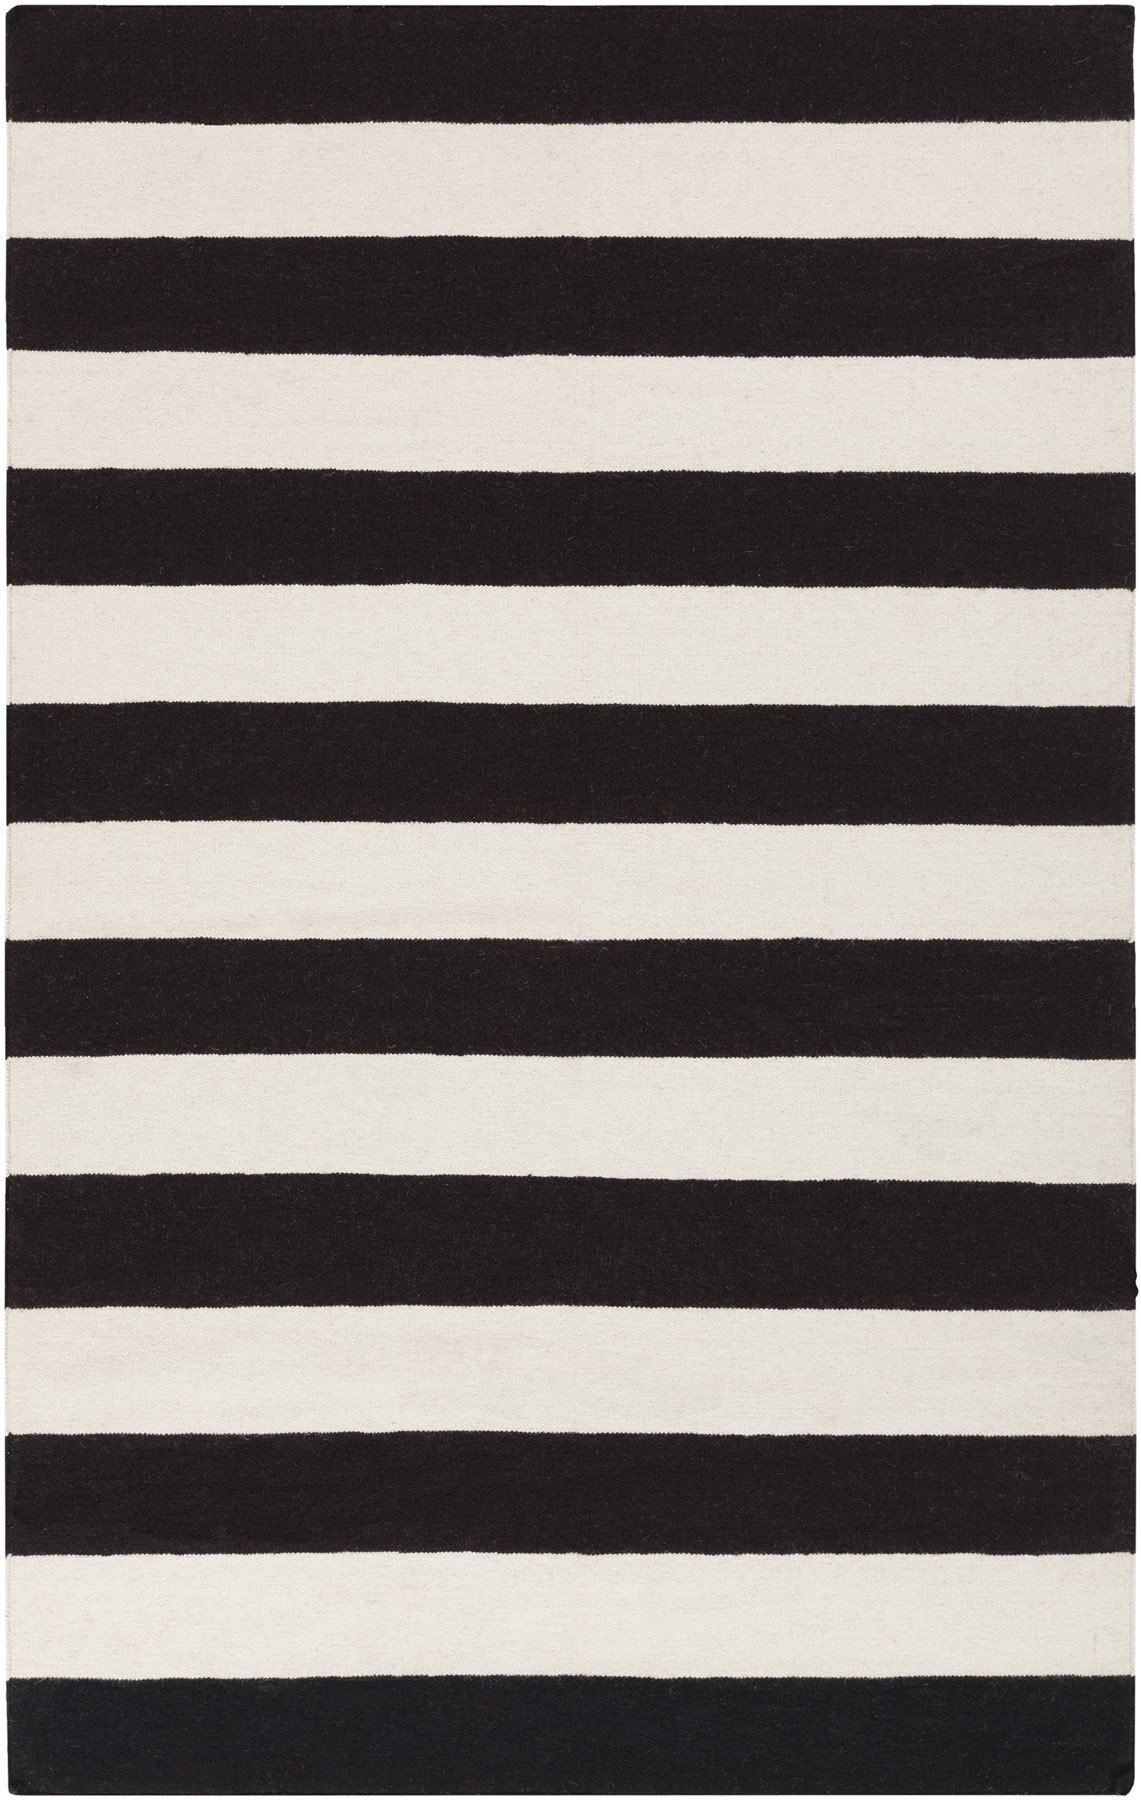 Black and white area rugs frontier collection 100% wool area rug in jet black and white design by CYCTNPA